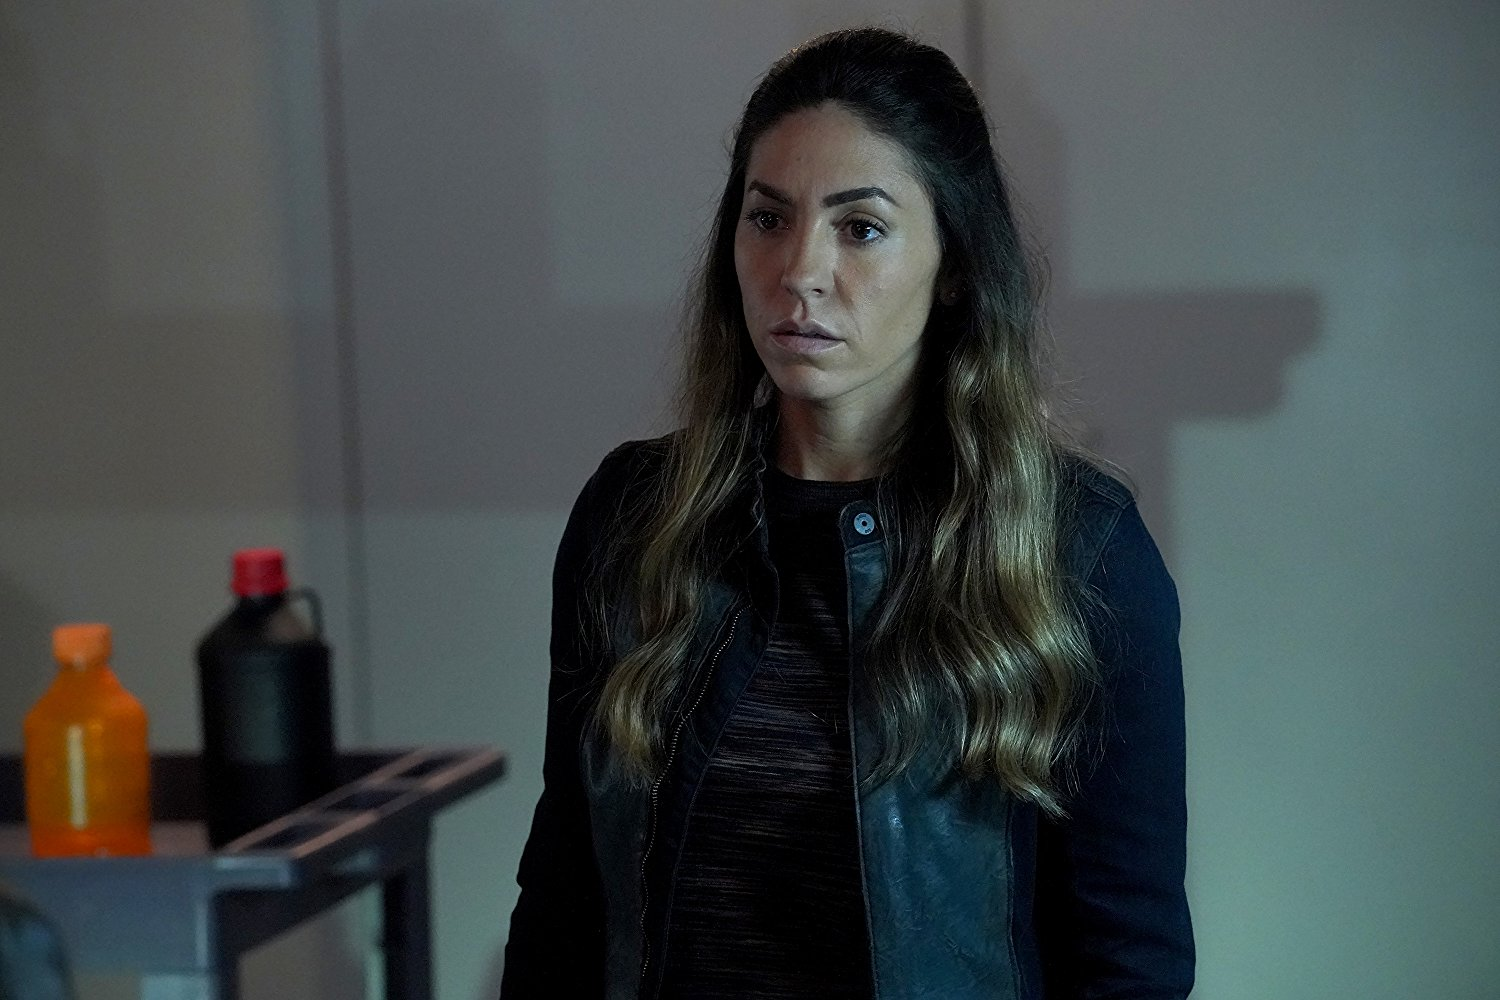 Agents of S.H.I.E.L.D.: All the Comforts of Home